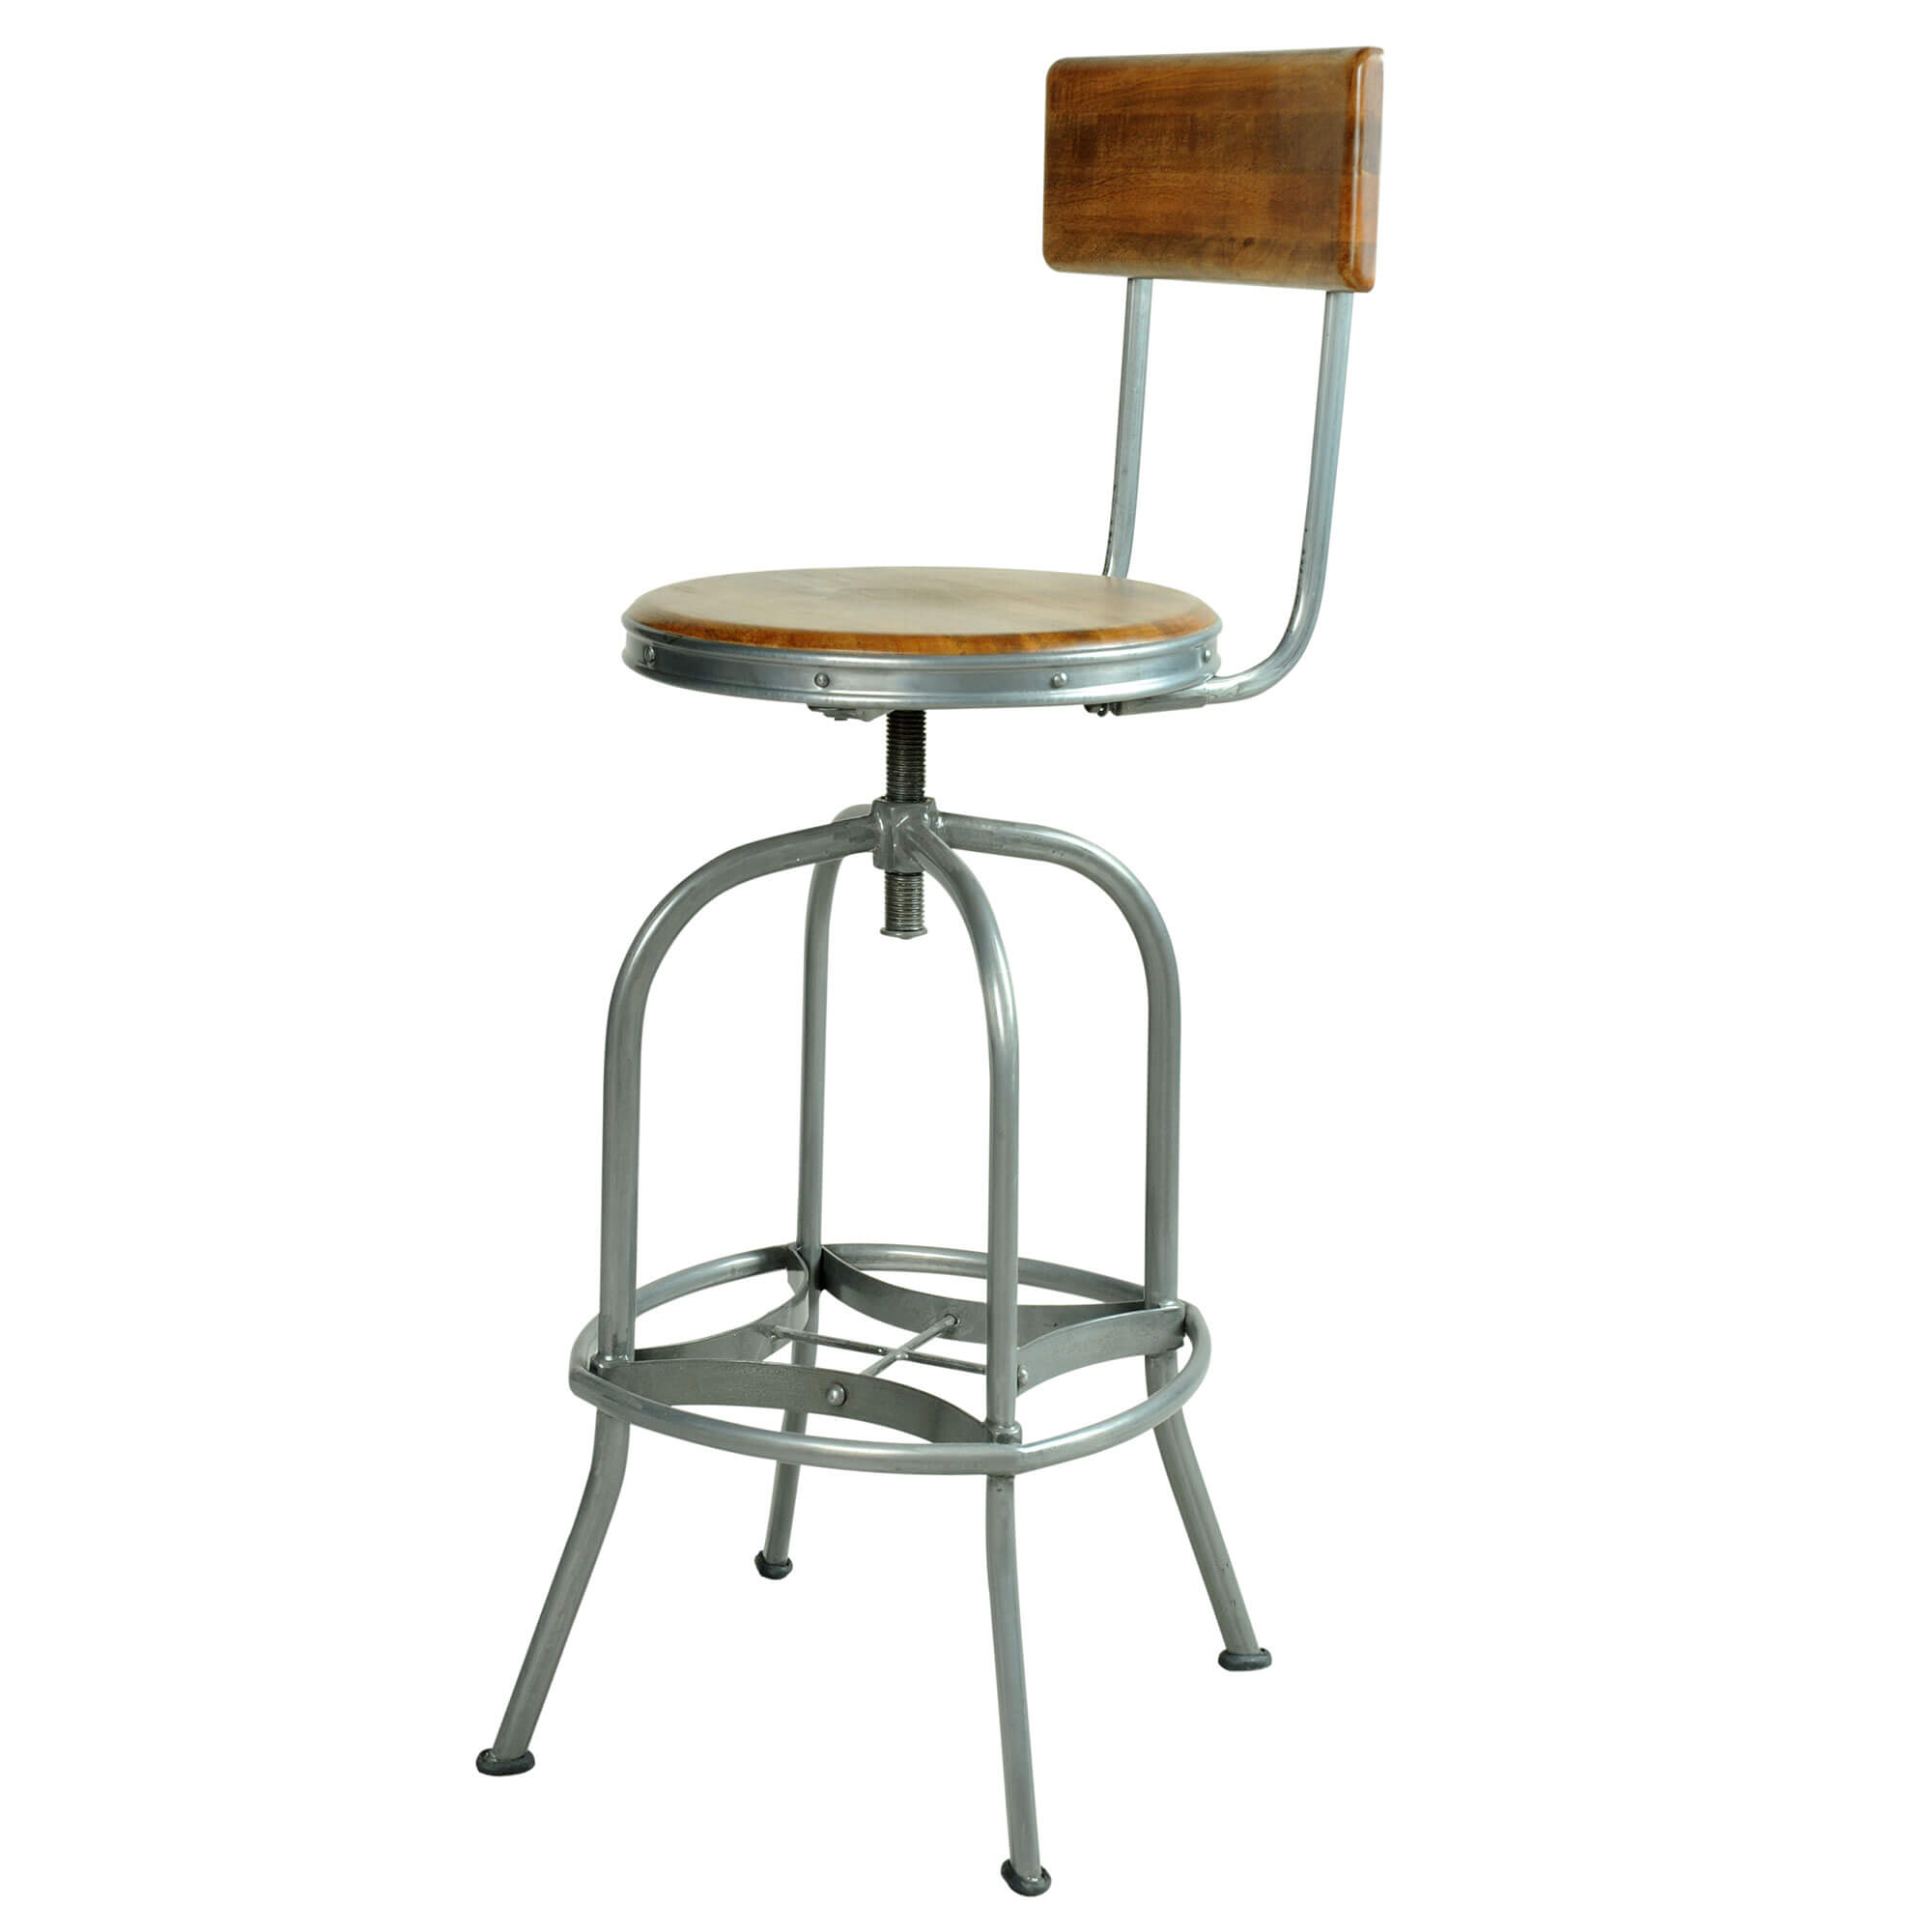 Urban Bar Stool with Back Rest | Furniture Supplies UK